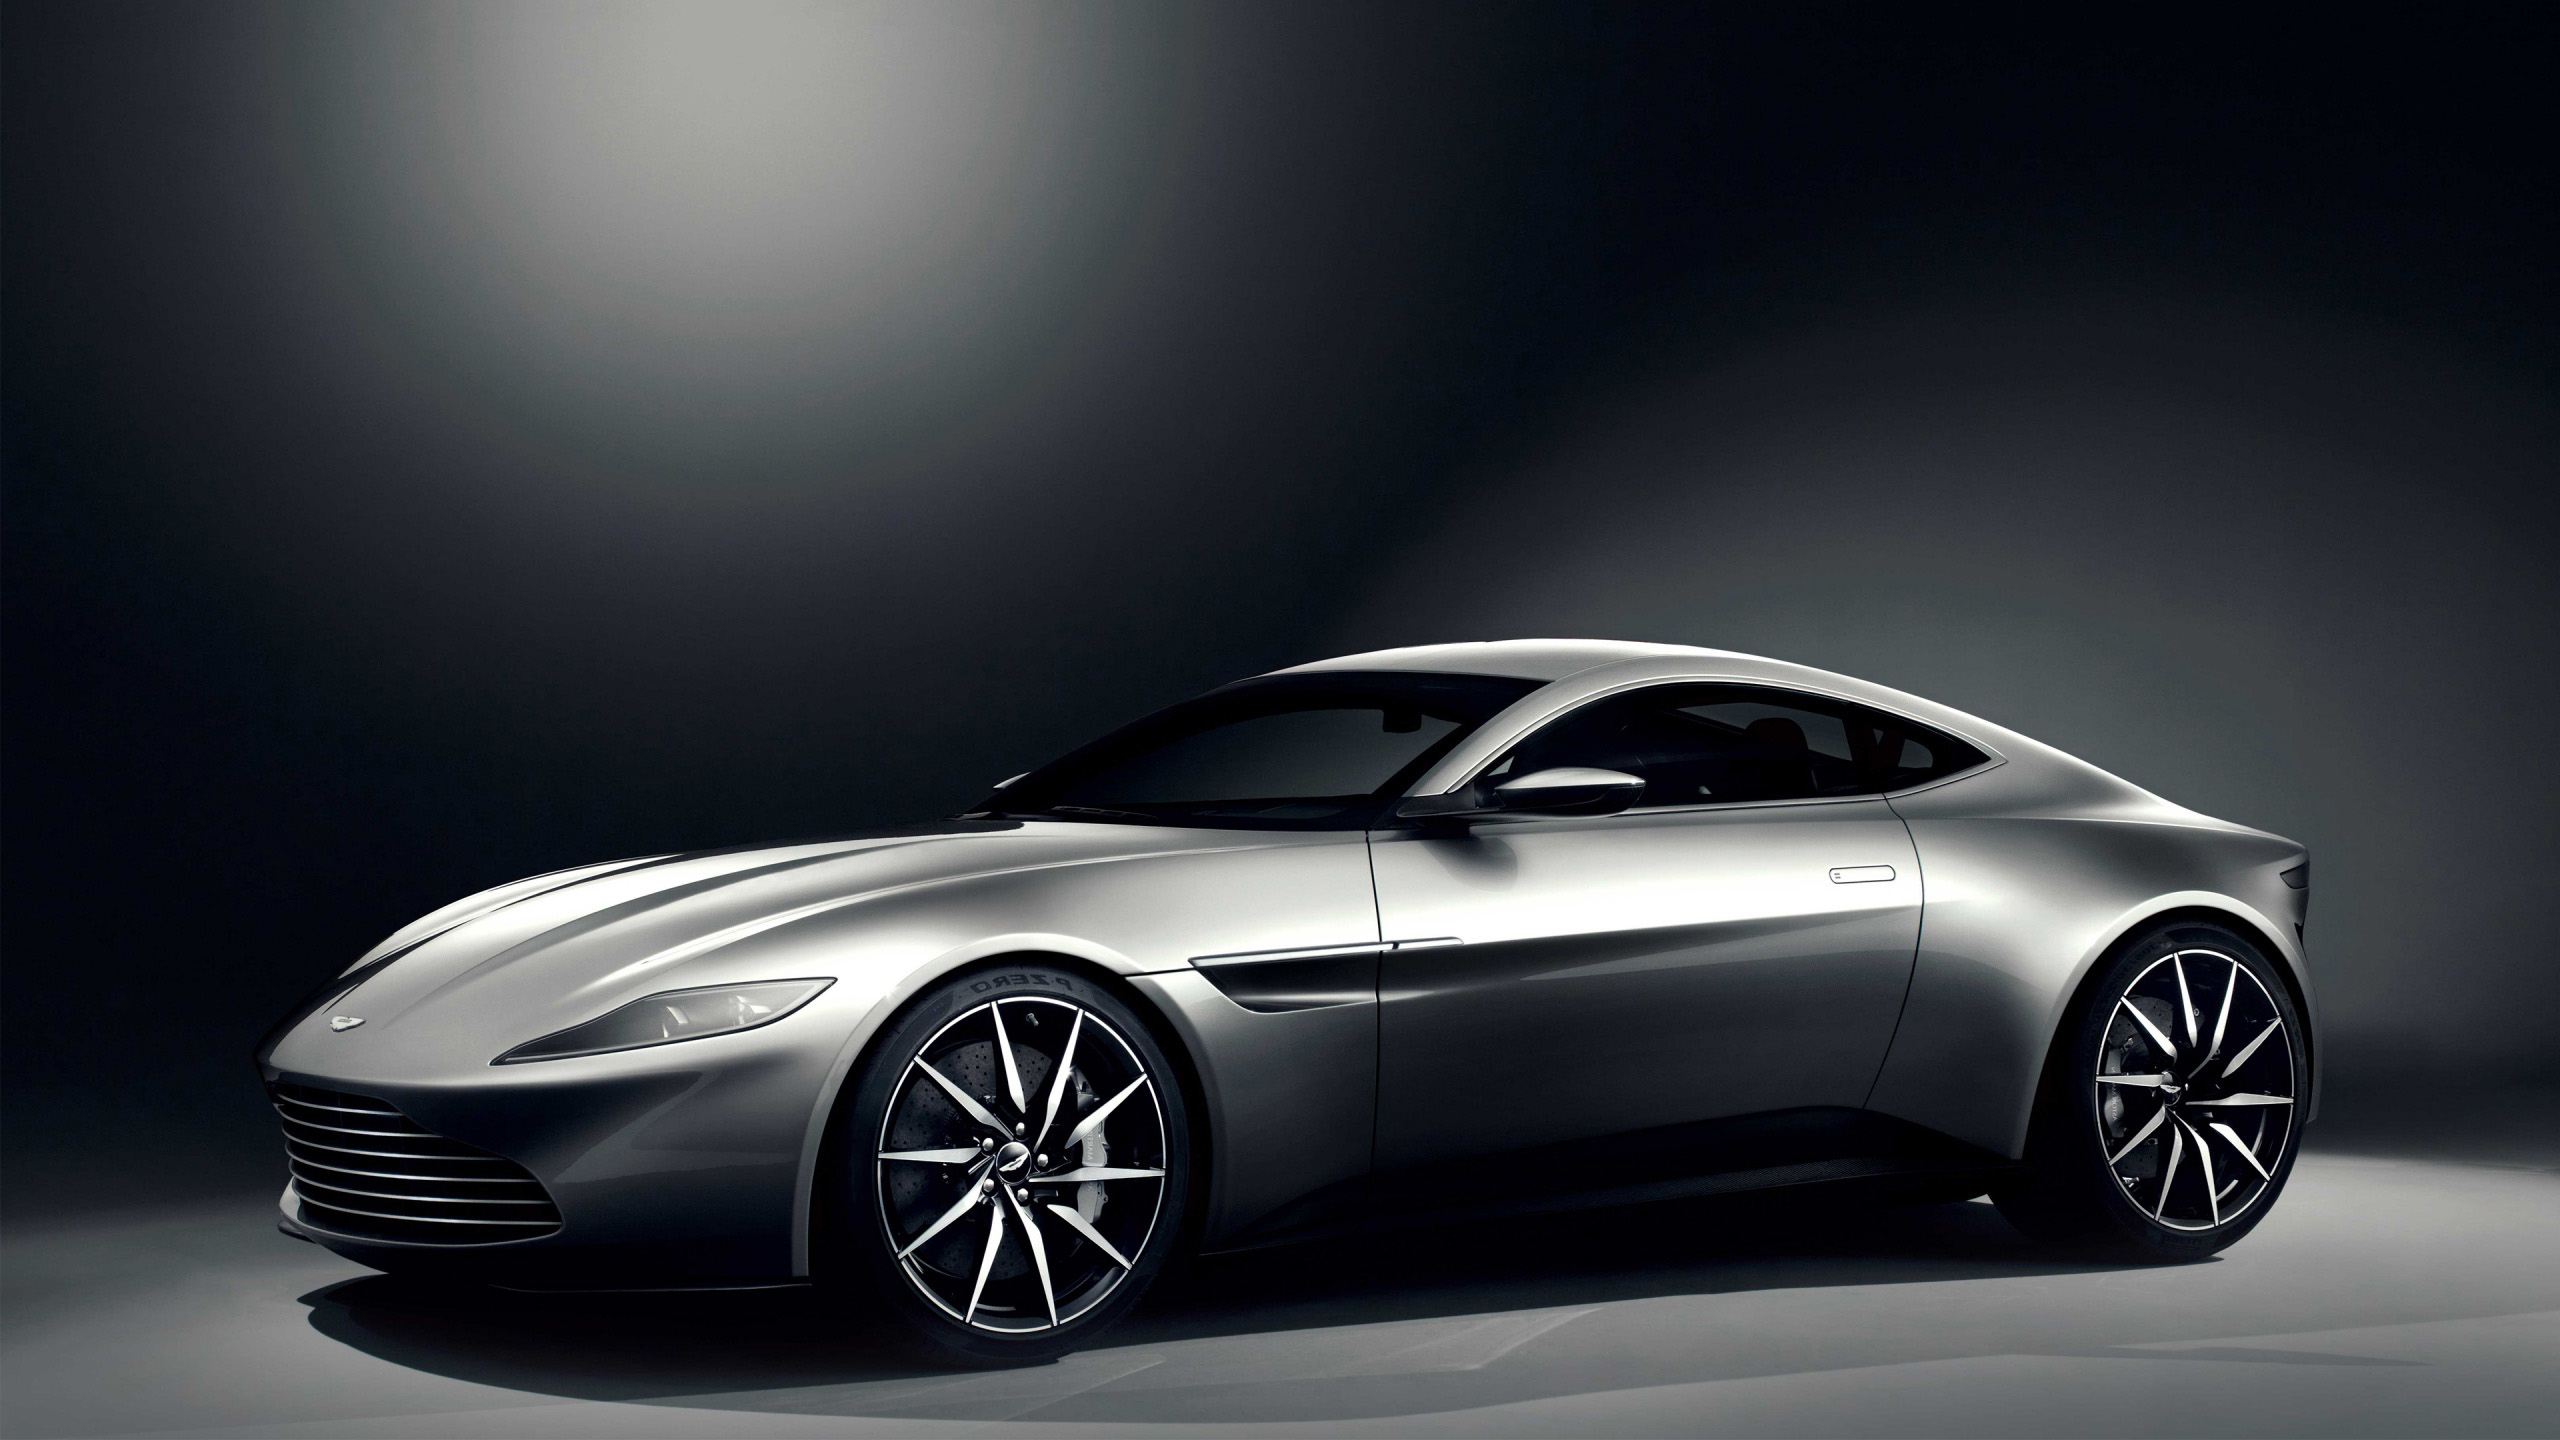 007's spectre aston martin db10 sells for $3.5mm - buzz